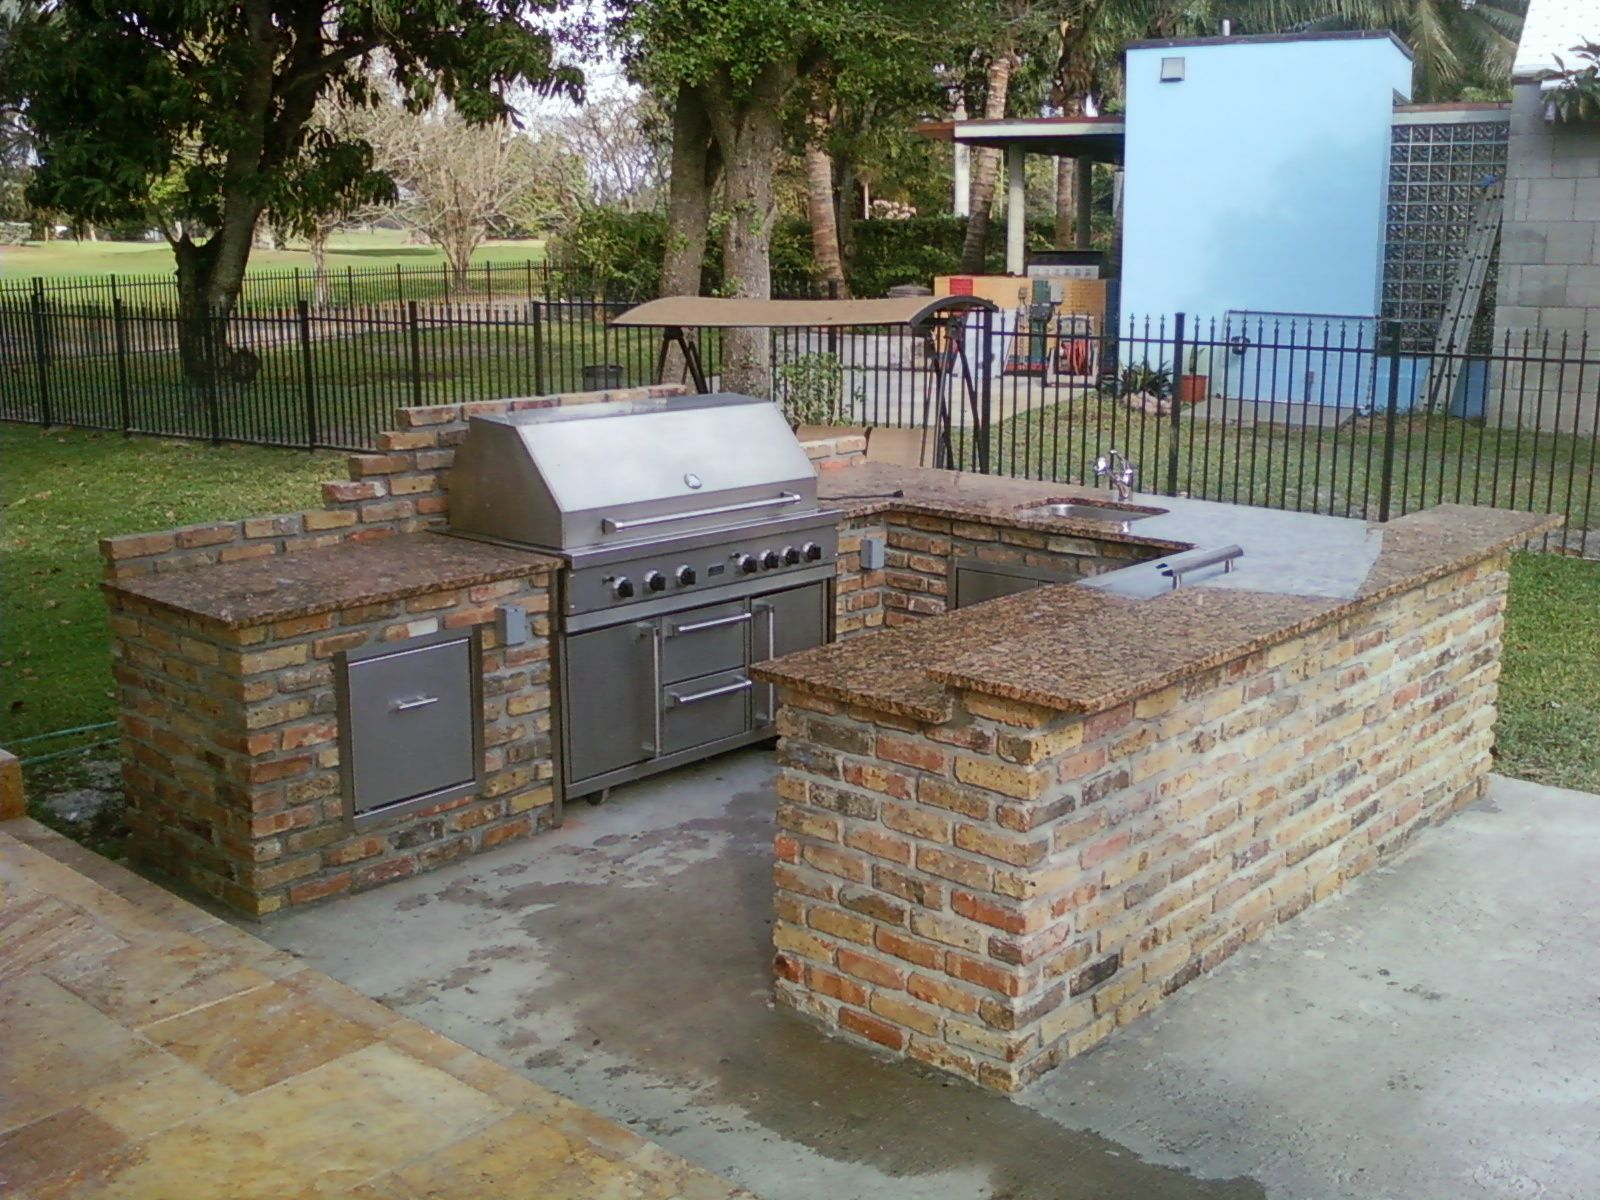 best ideas about brick grill on pinterest outdoor grill area outdoor brick kitchen designs outdoor - Bbq Design Ideas